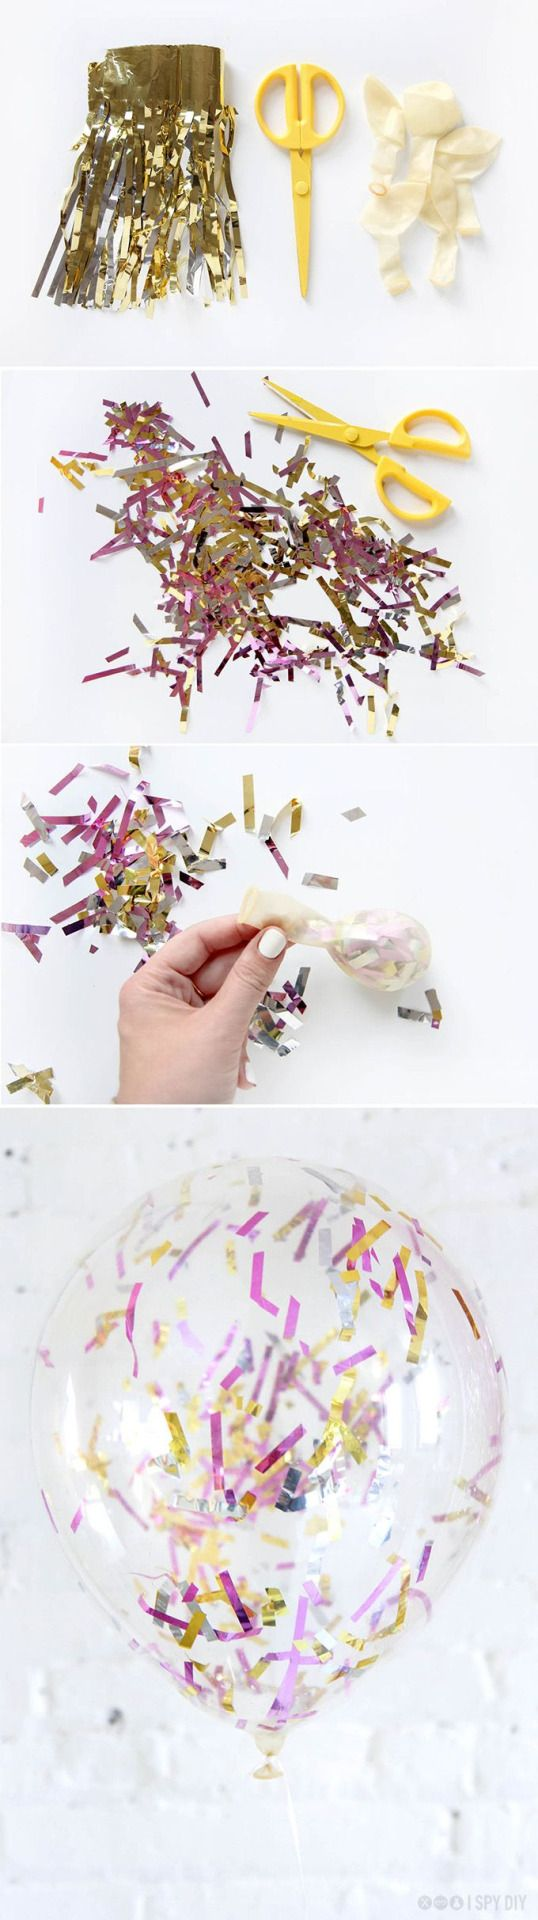 Confetti Balloon Tutorial Make sure to buy balloons that don't have any sort of powder inside them; the powder will inhibit the static charge.